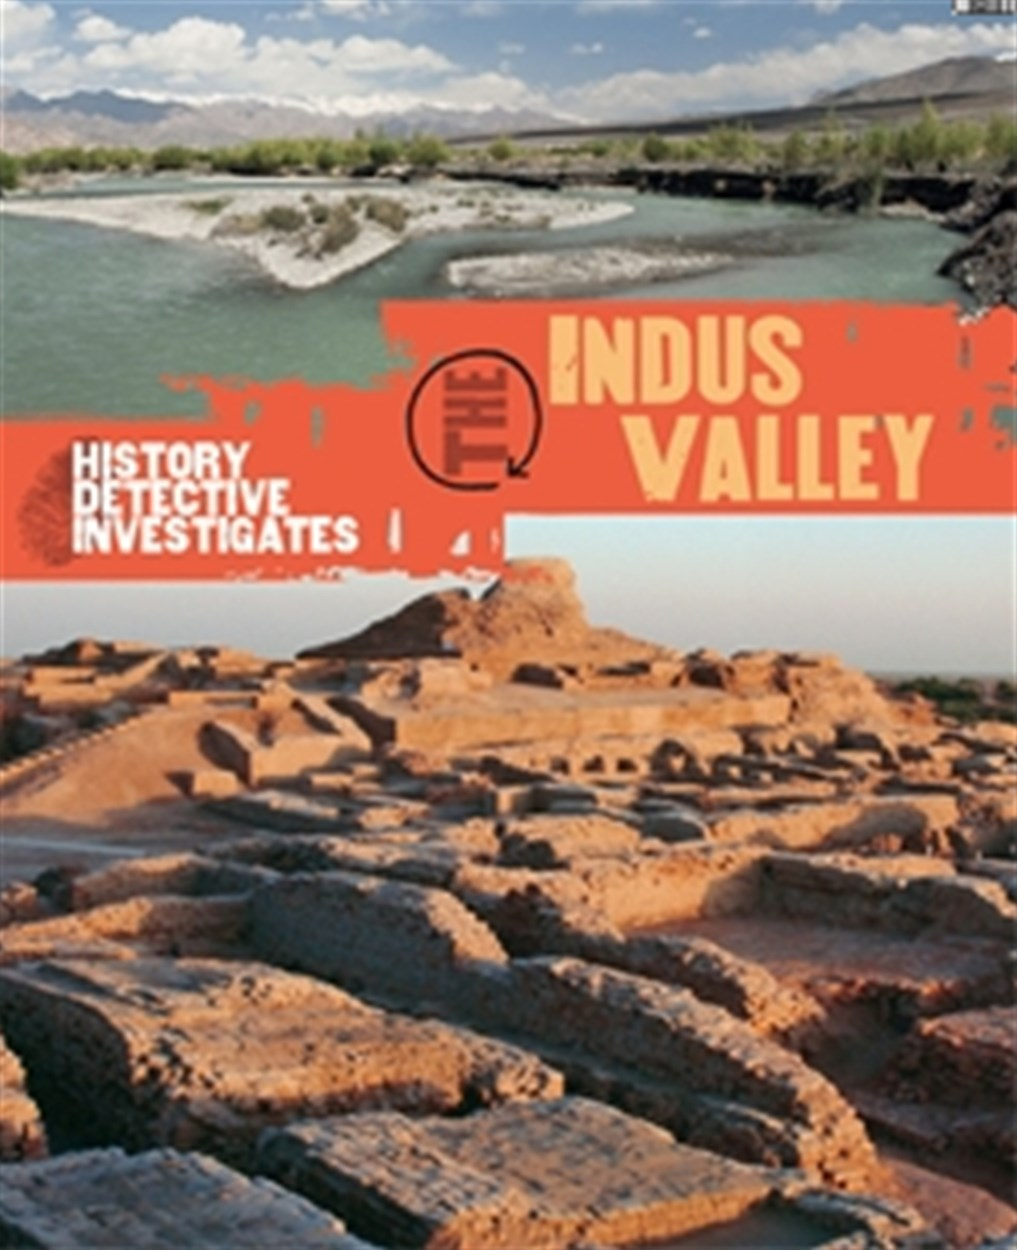 The History Detective Investigates: The Indus Valley